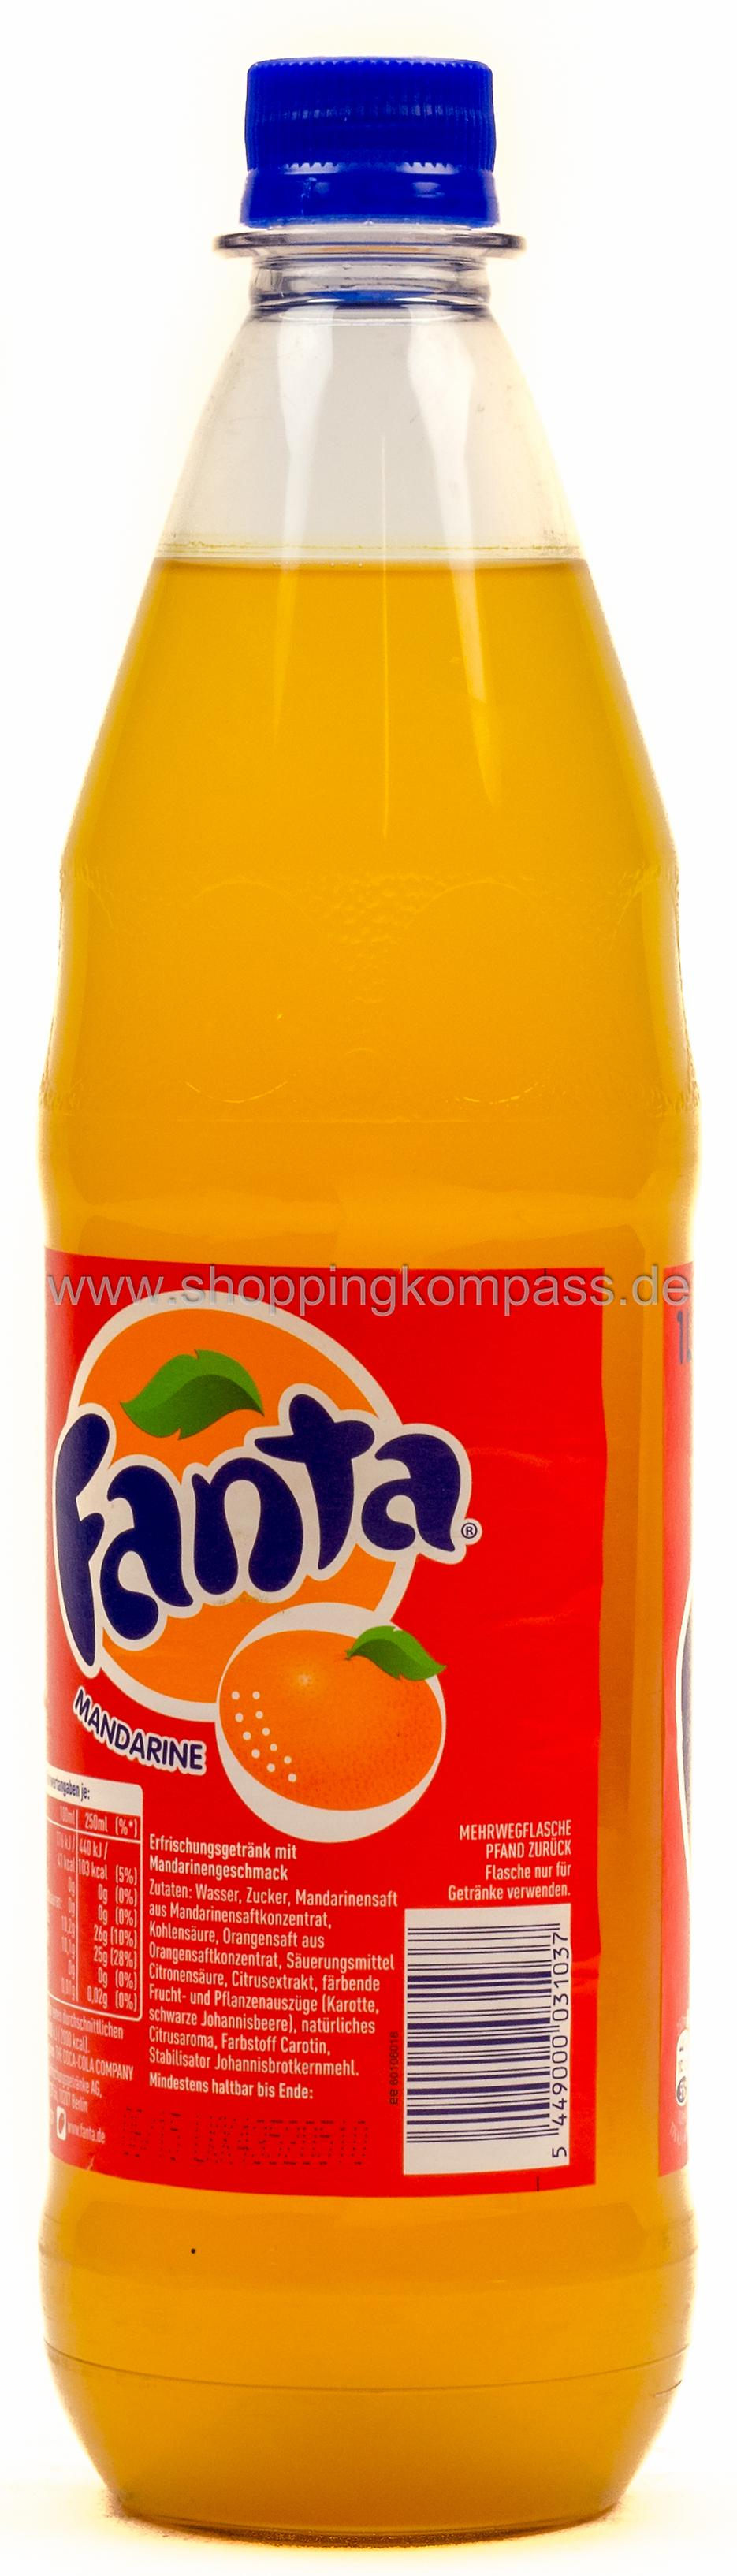 limonade fanta mandarine 1 l pet mehrweg ihr. Black Bedroom Furniture Sets. Home Design Ideas